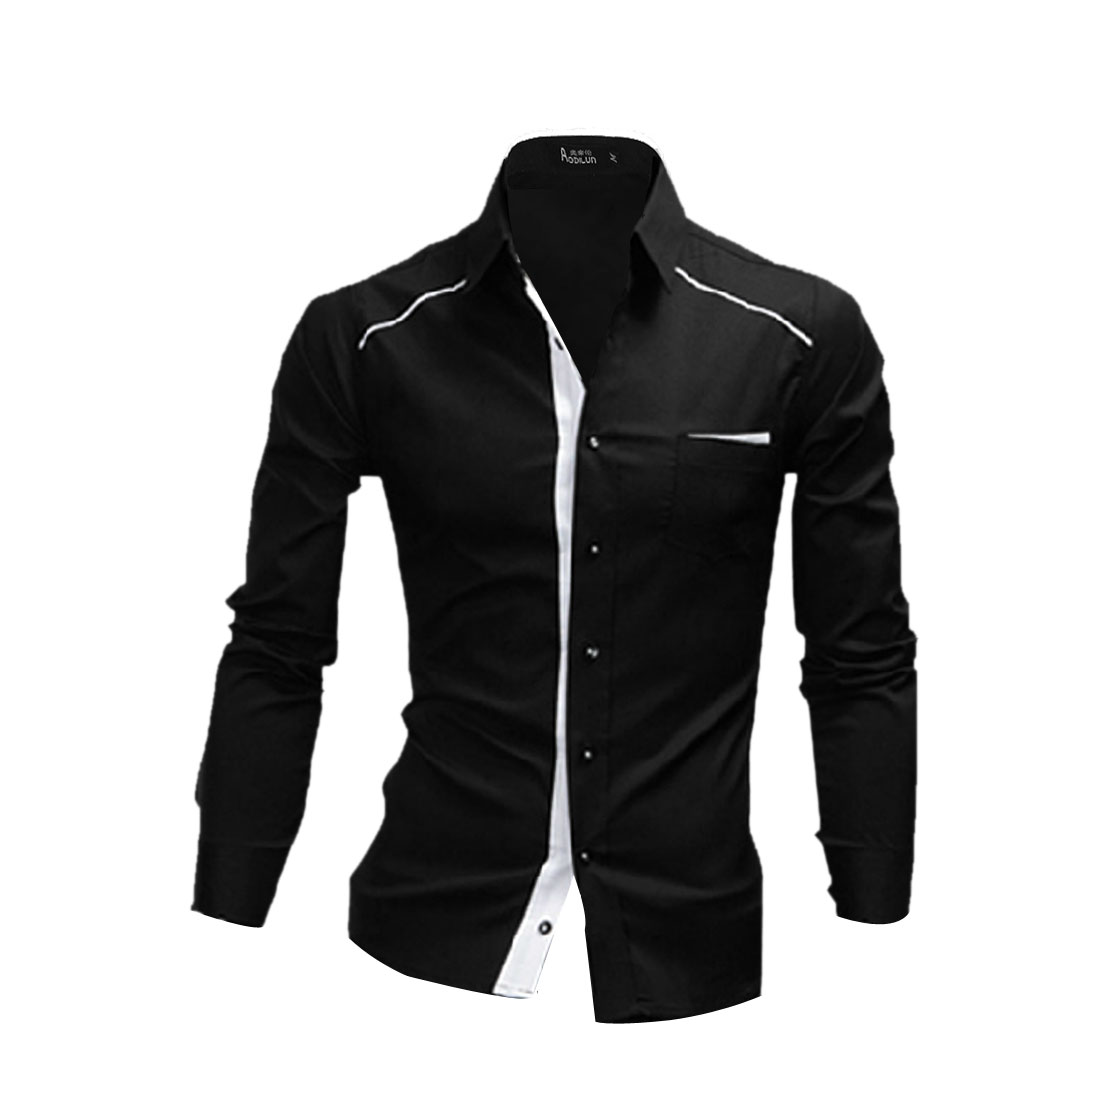 Men's Point Collar Buttoned Long Sleeves Fashion Black L Shirt